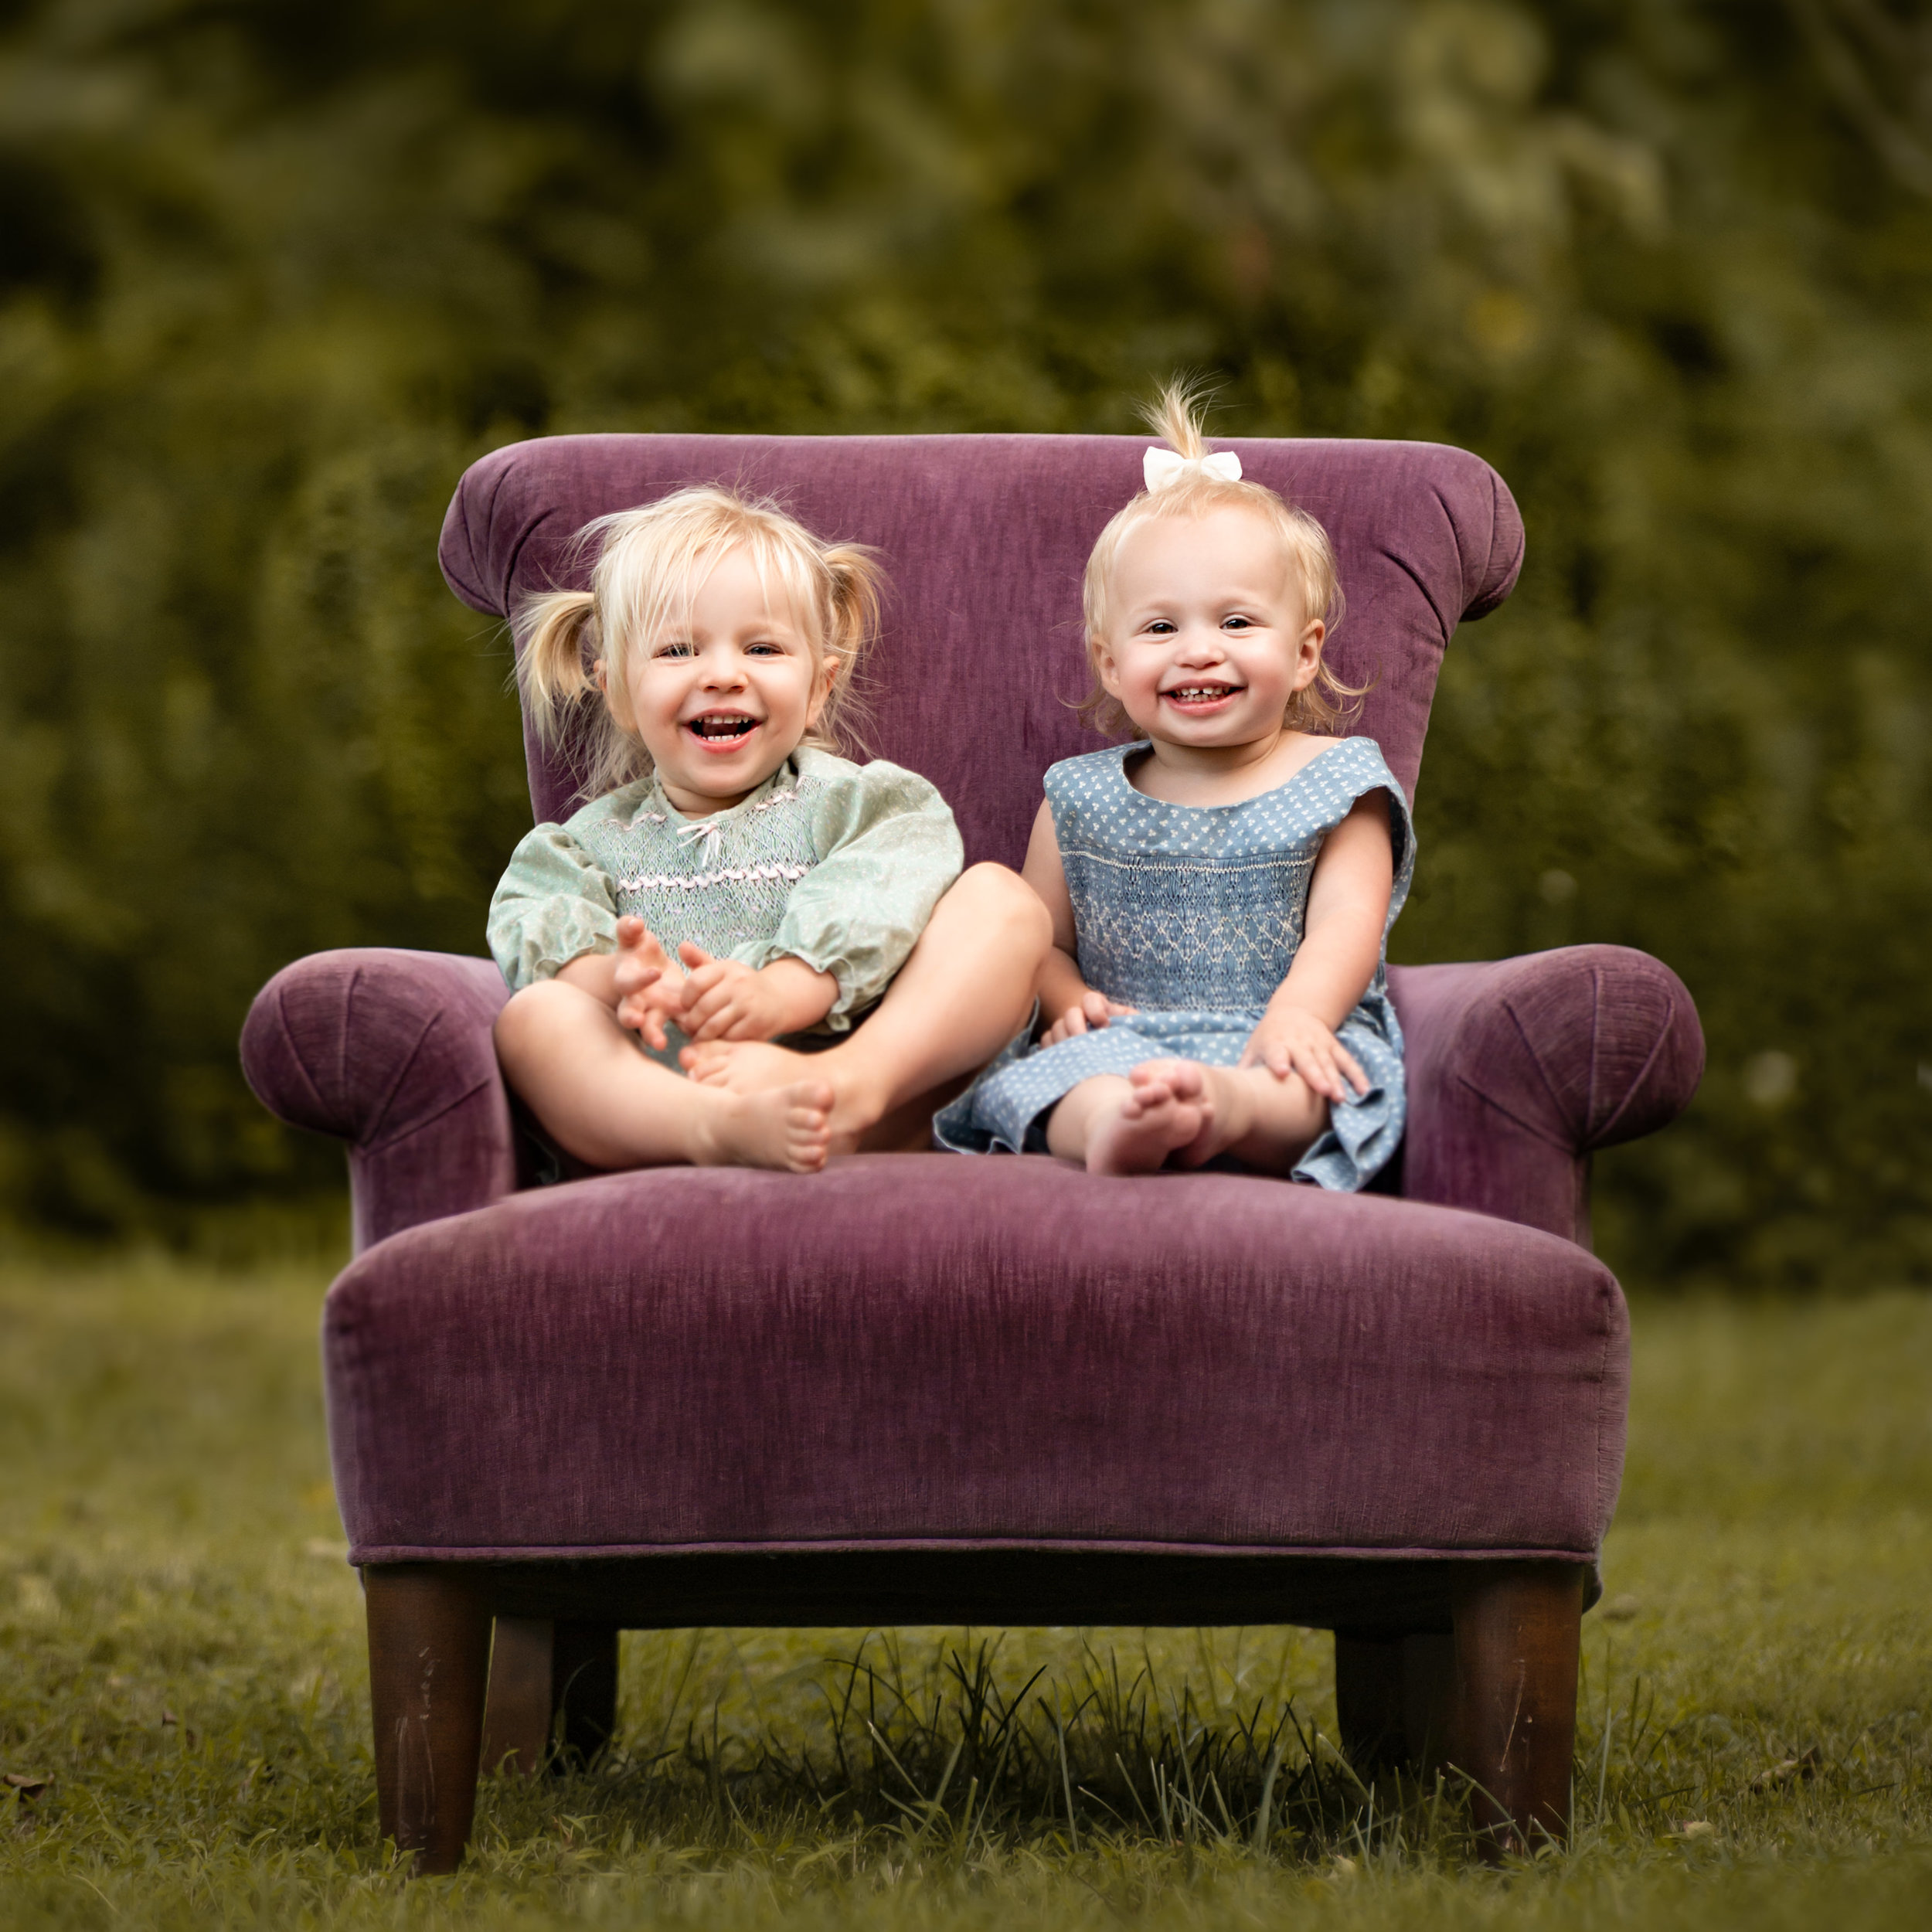 toddlers-smiling-chair.jpg